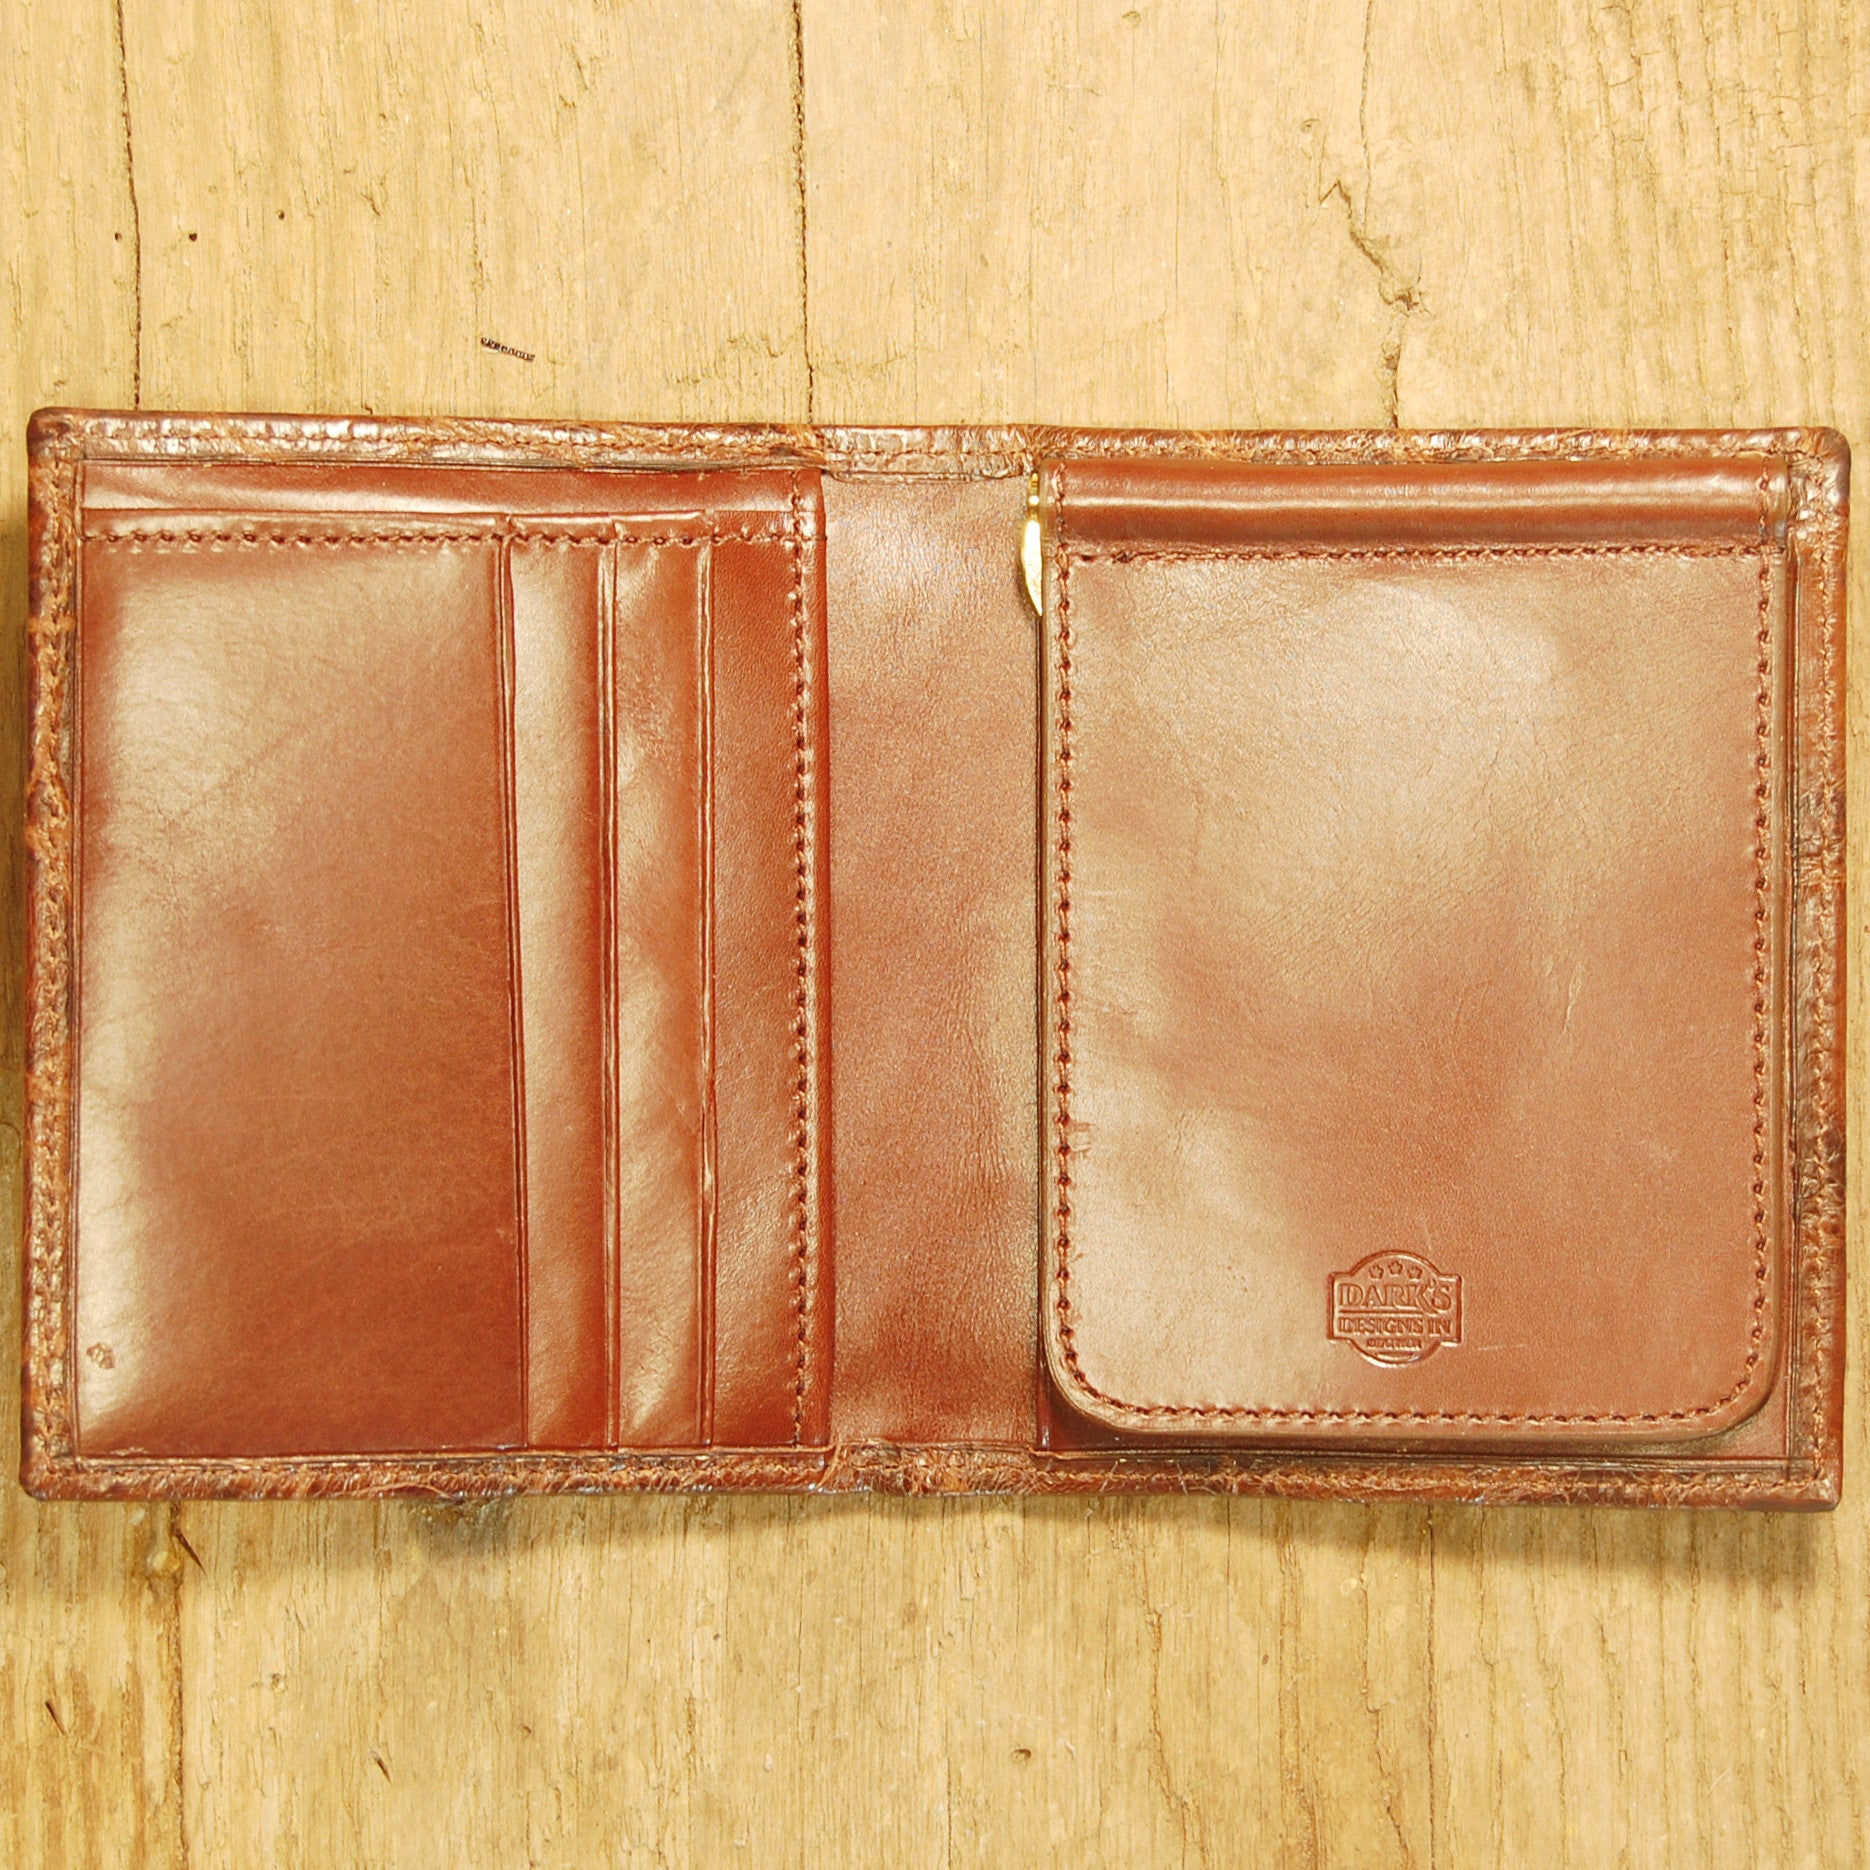 Dark's Leather Money Clip Wallet in Alligator Brown, Interior